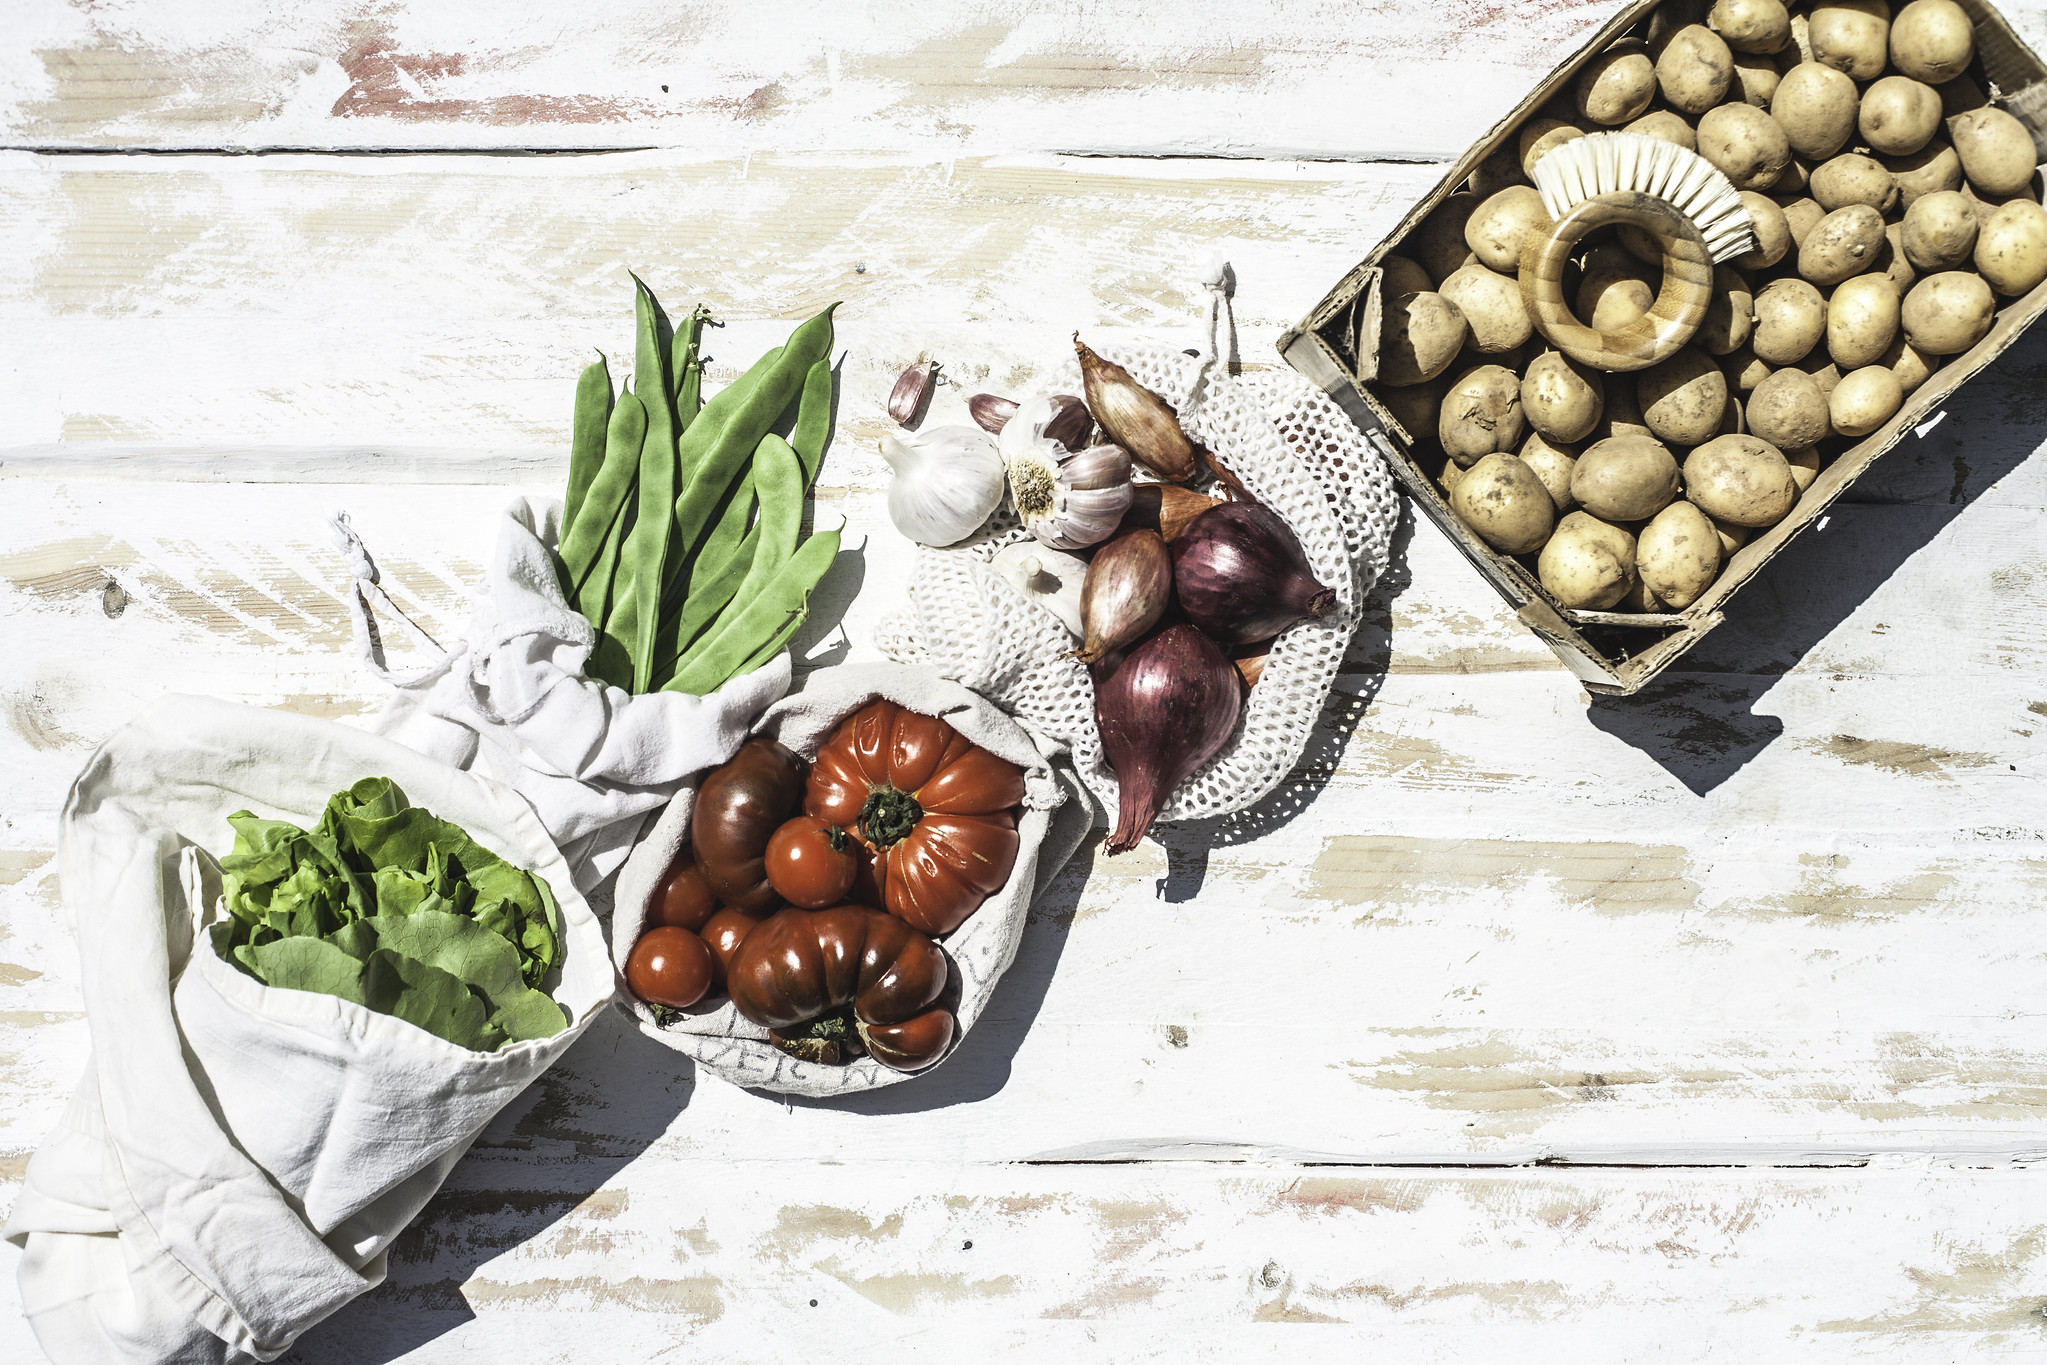 Wash your own veggies, they are cheaper and chemical free!  Ugly fruit and vegetables taste great but usually end up being tossed, show them some love!